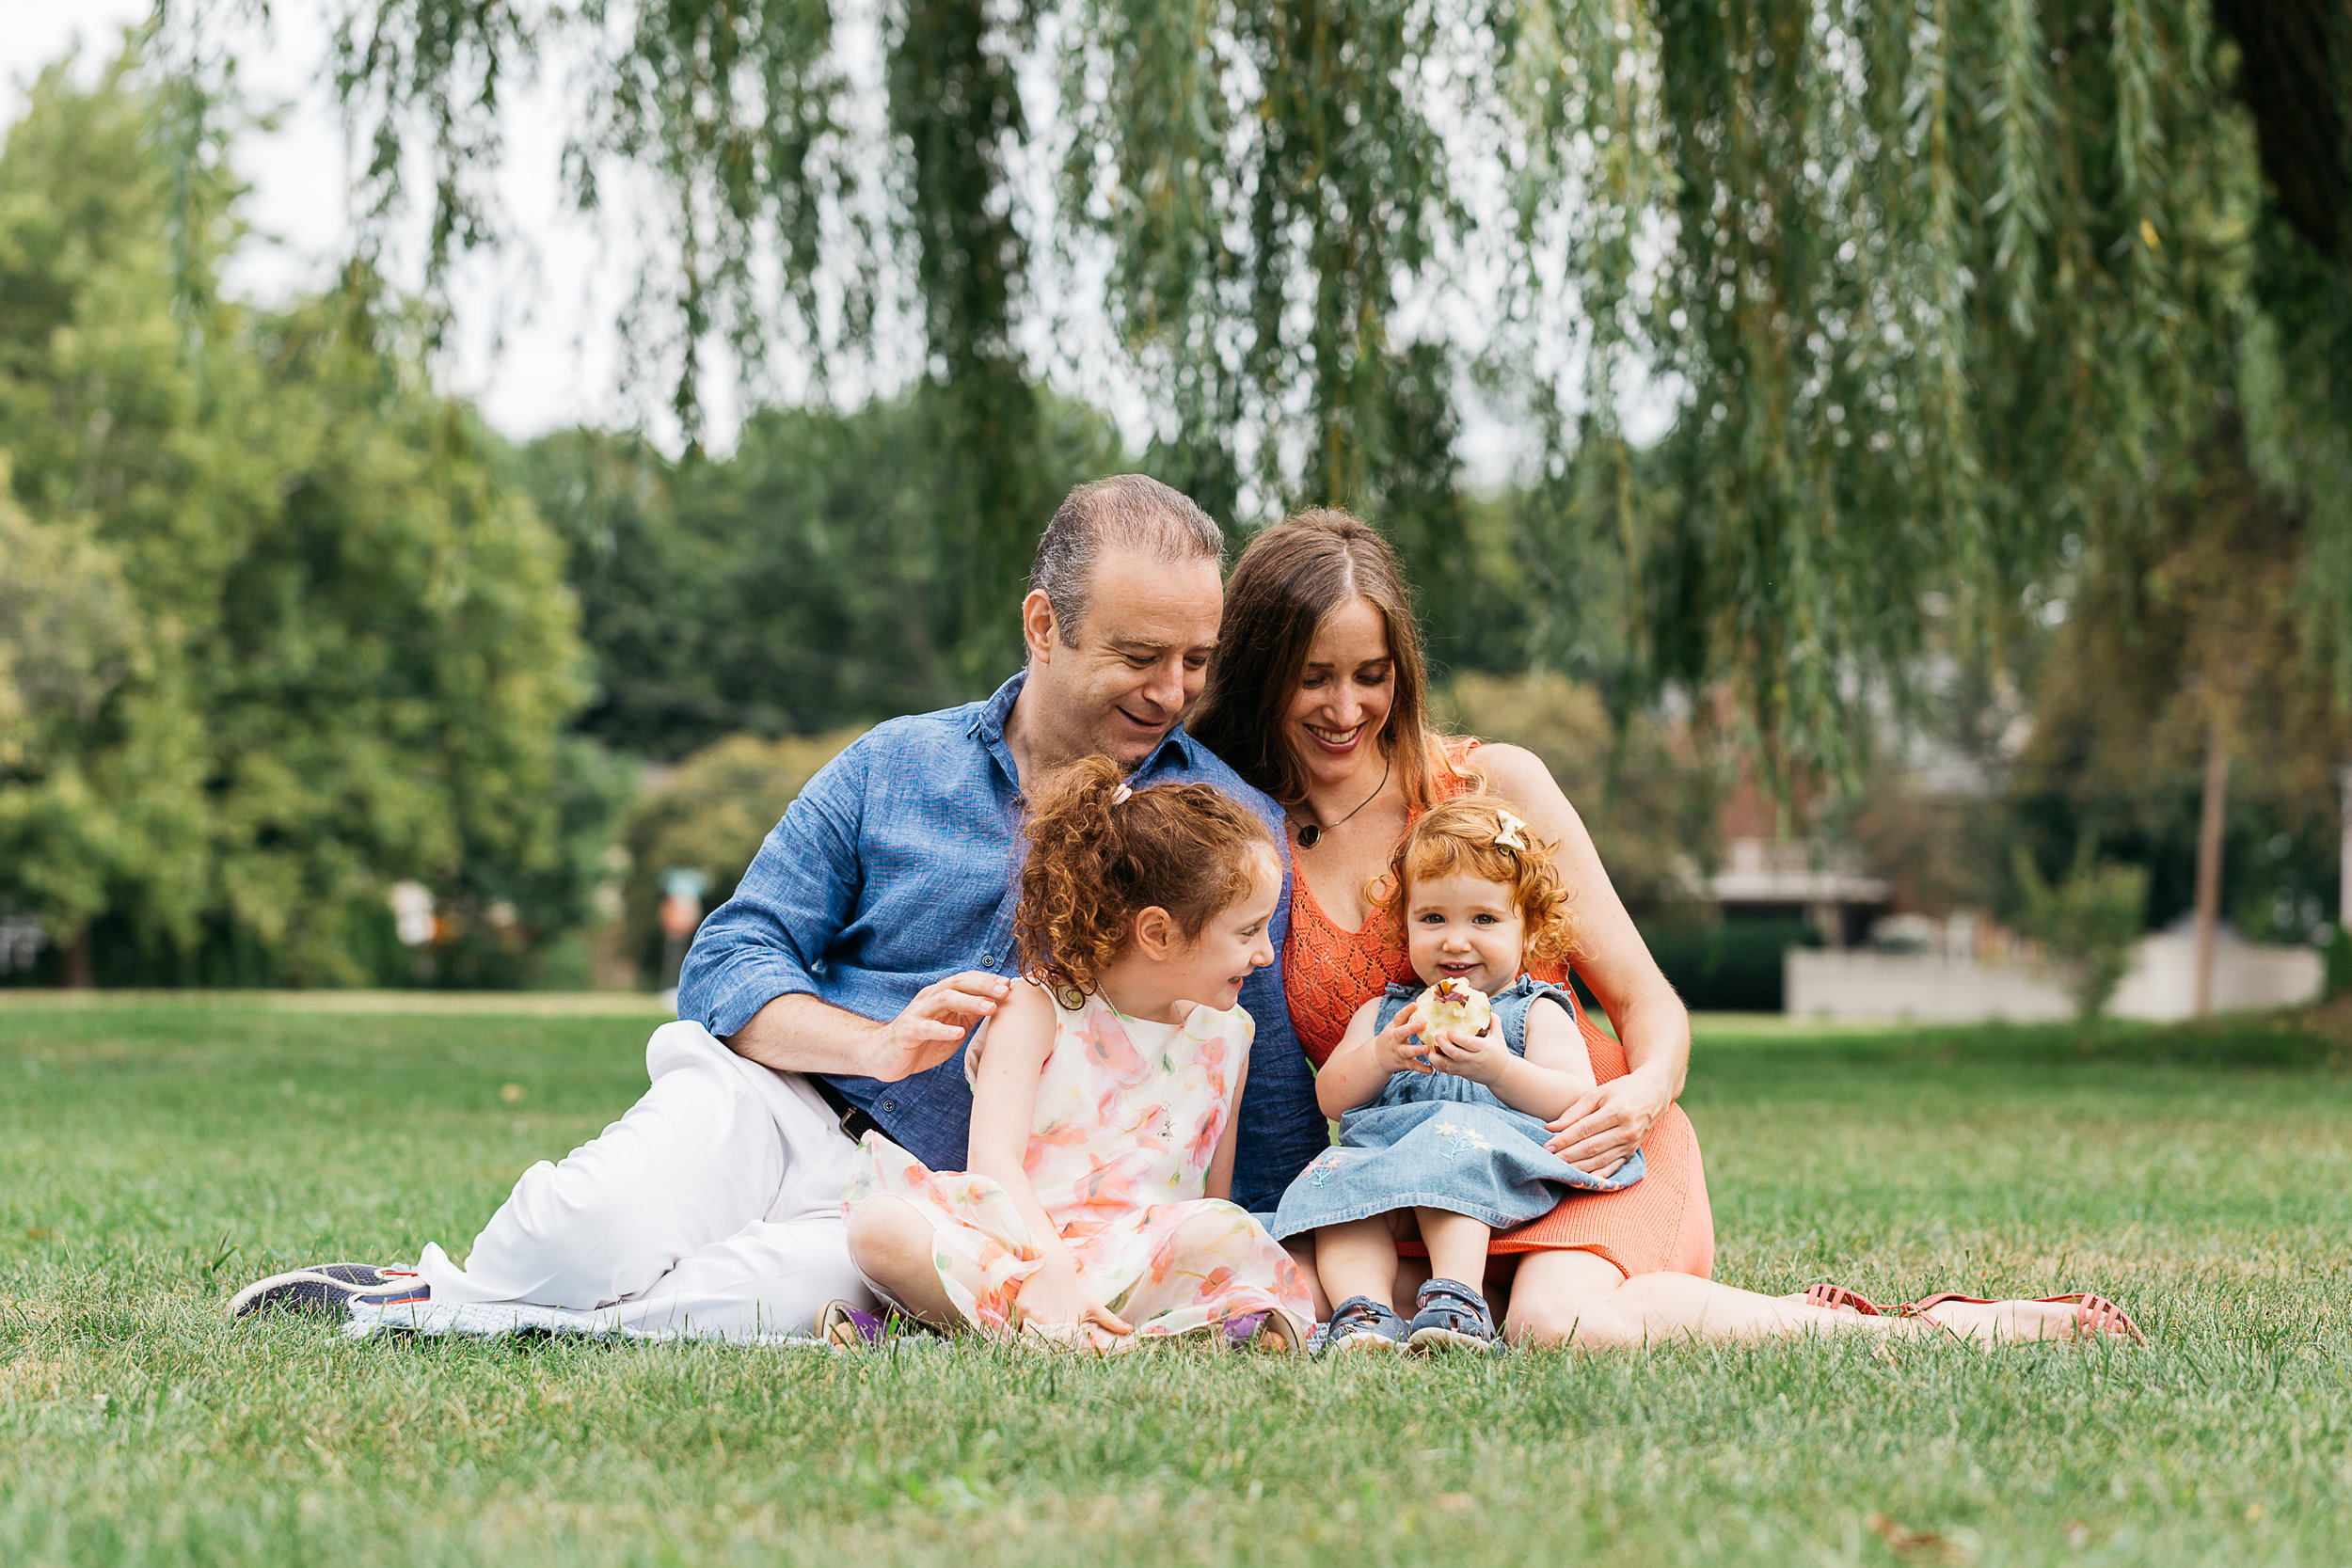 Dedham-family-photographer-7.JPG